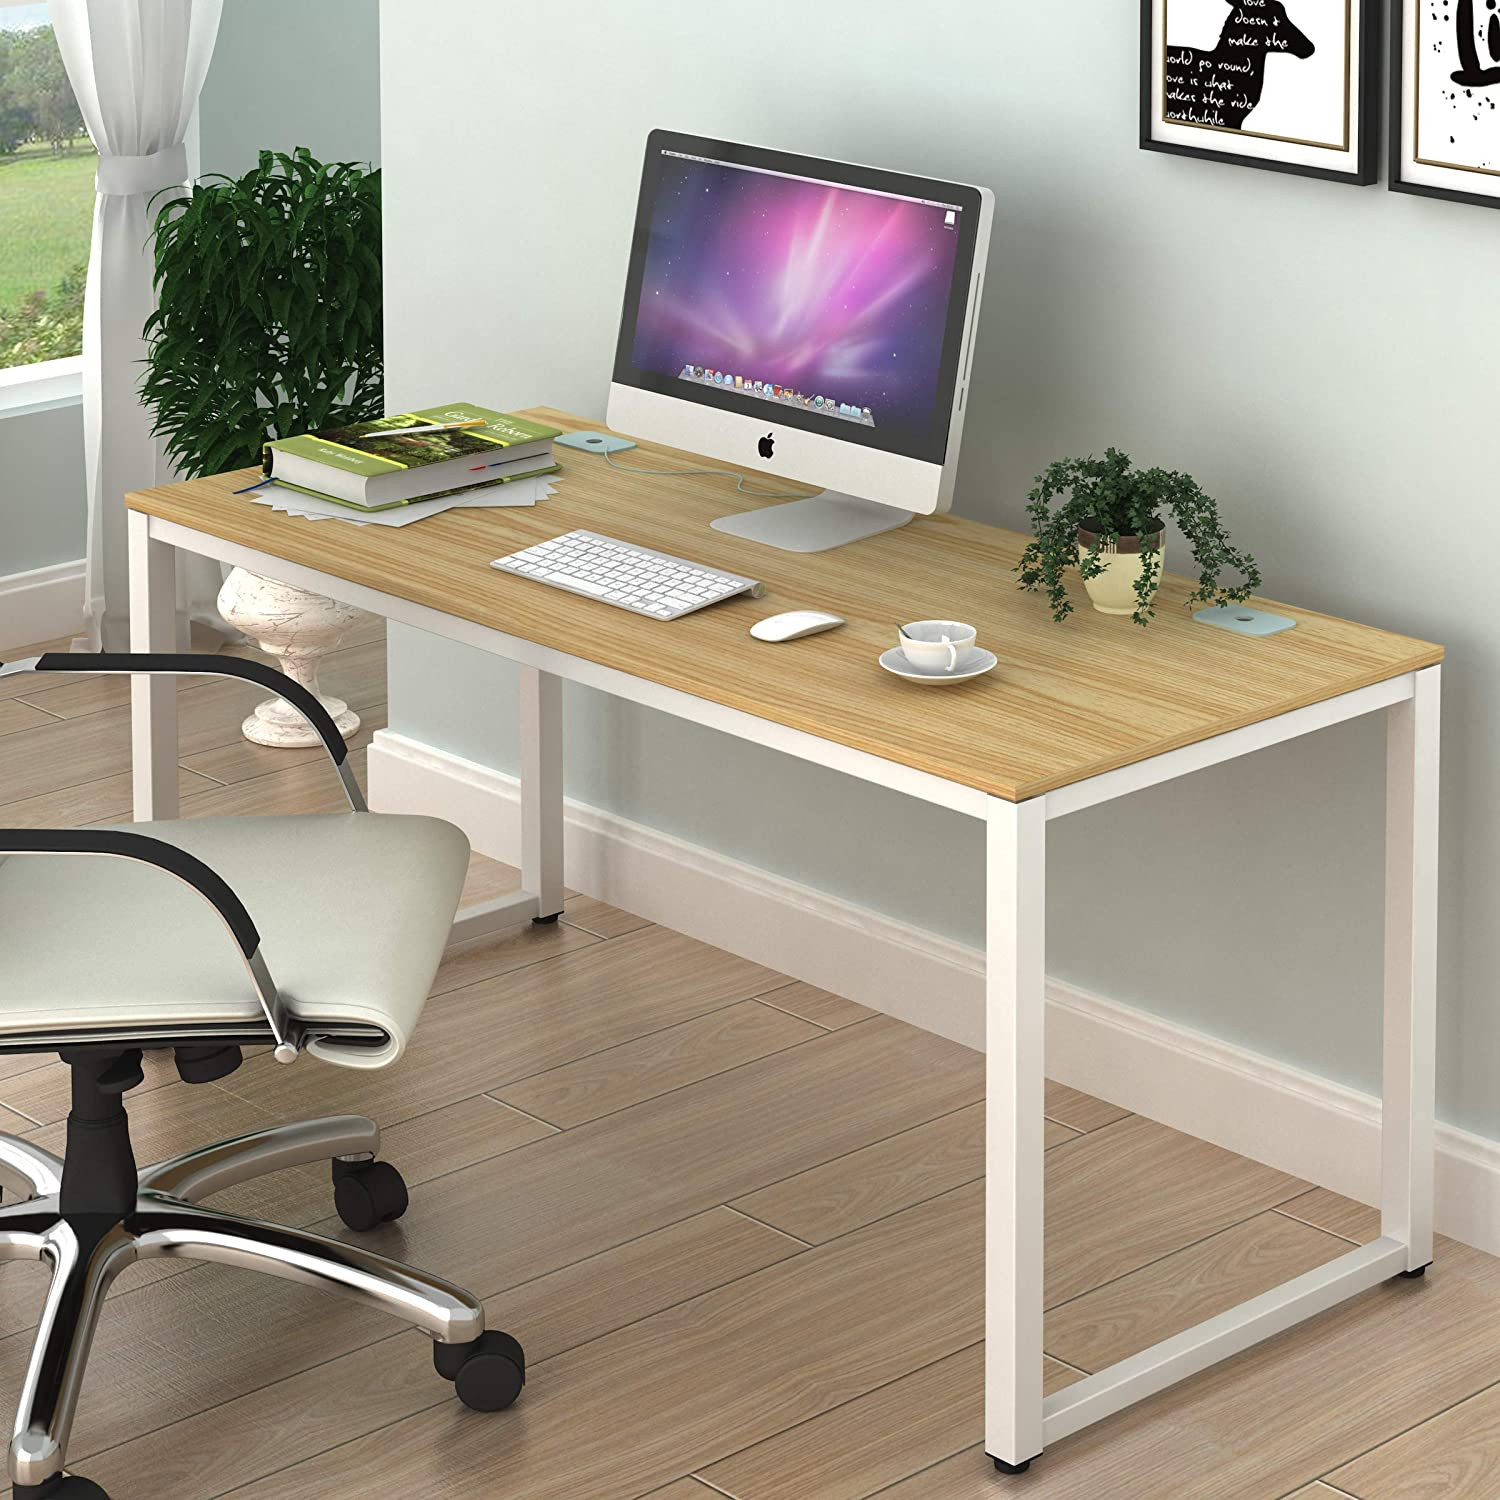 - Amazon.com: SHW Home Office 55-Inch Large Computer Desk, Oak